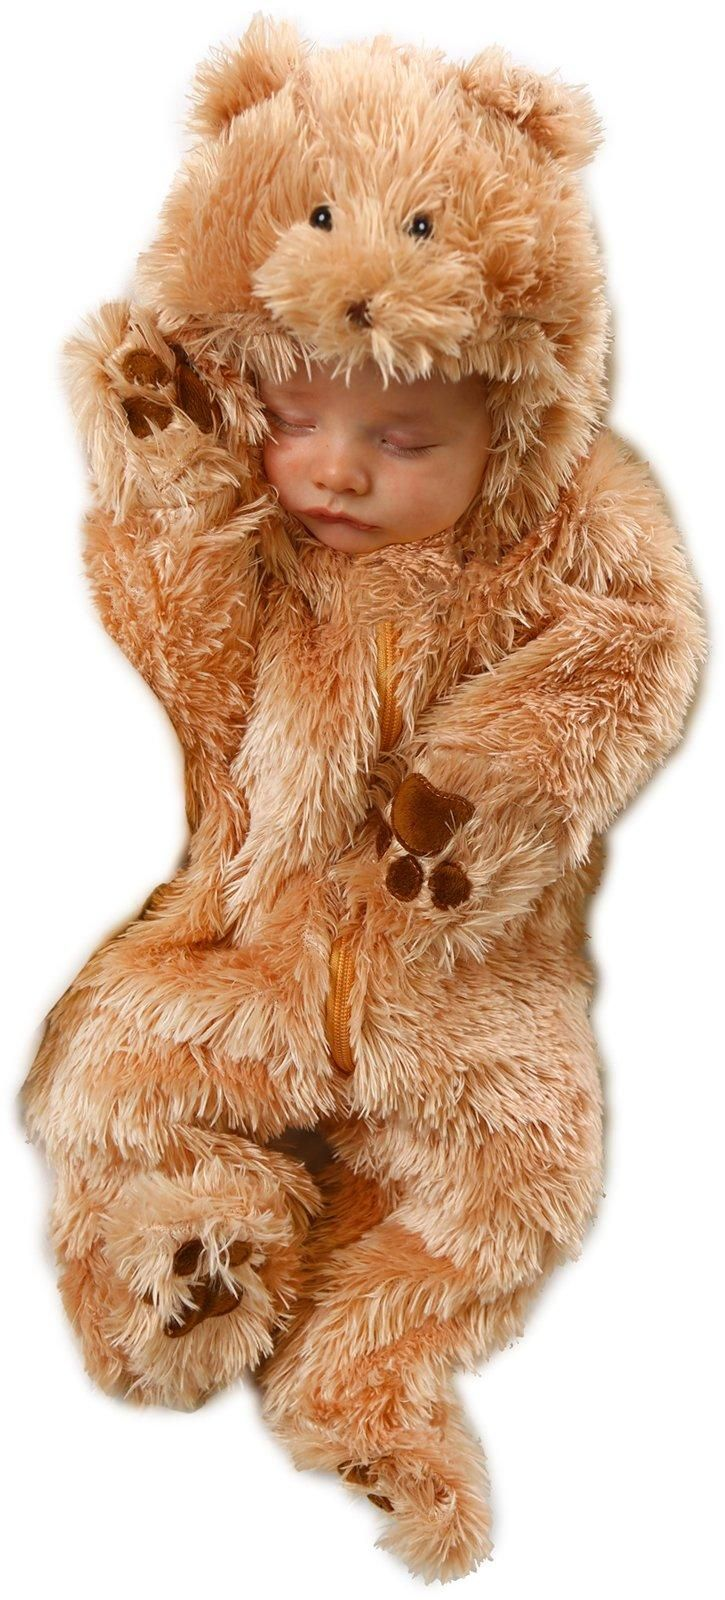 The Cutest!!! Snuggle Bear Jumpsuit Infant Costume from Buycostumes.com